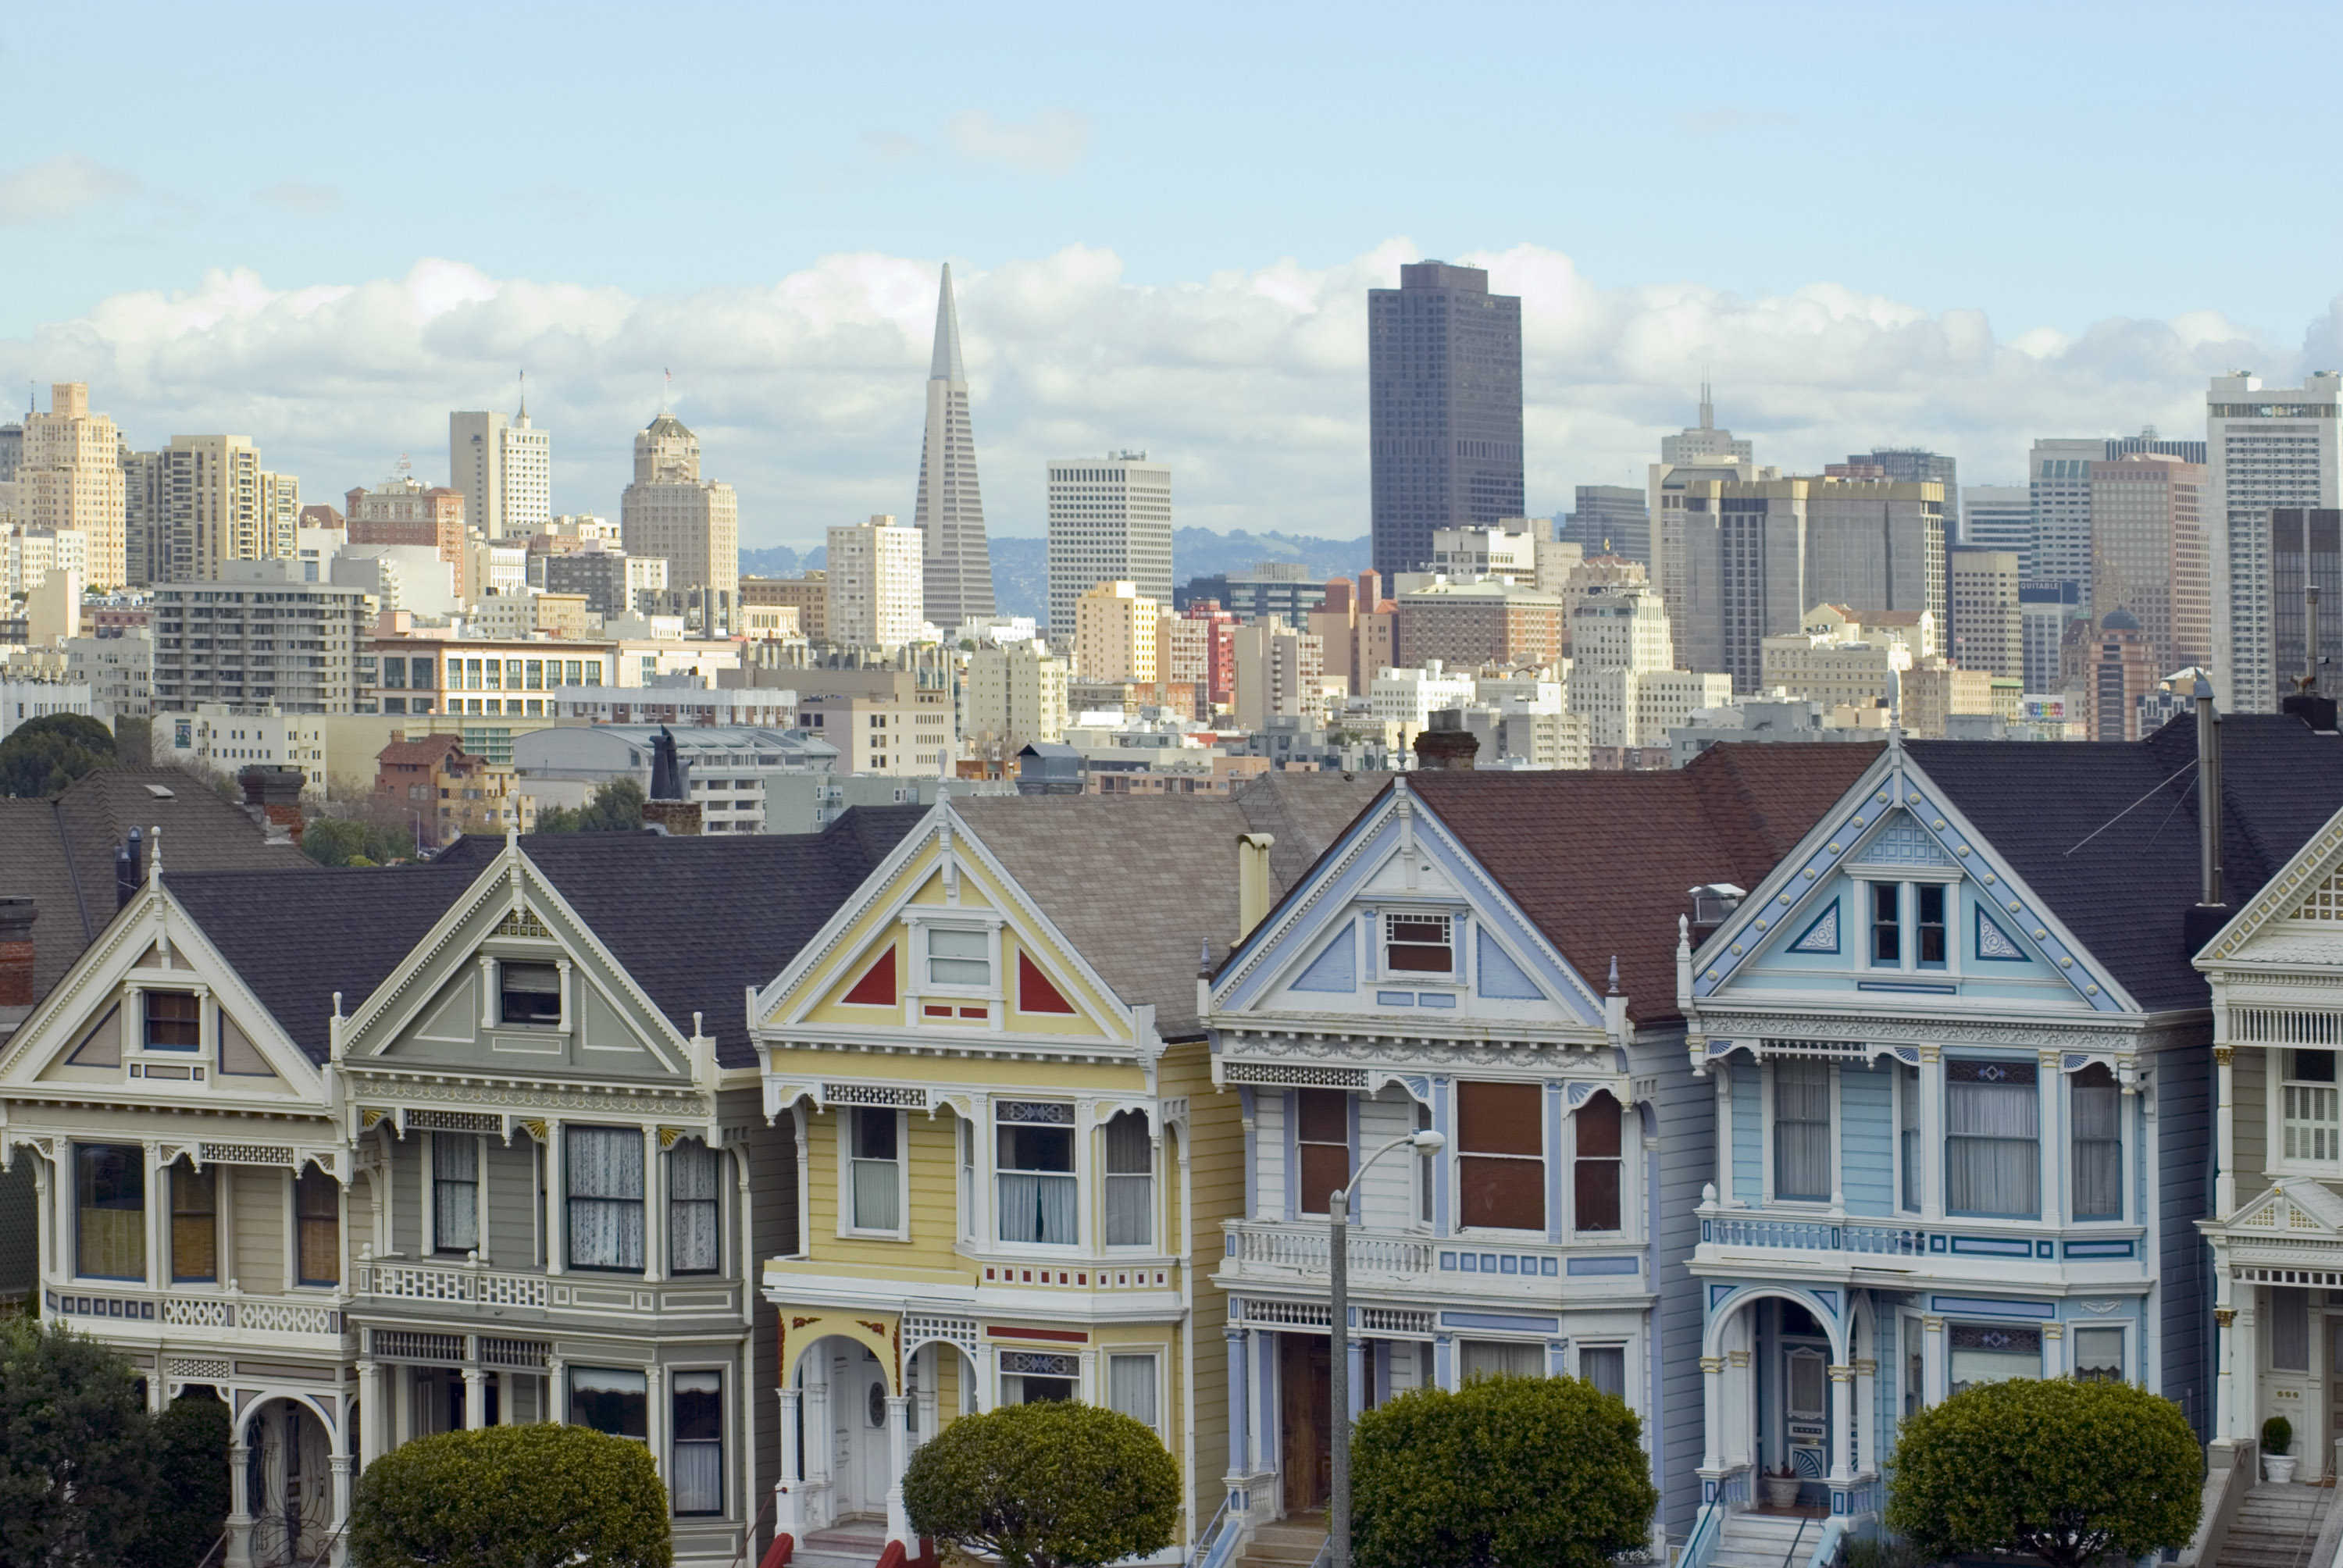 Free stock photo 5563 san francisco houses freeimageslive for Houses in san francisco